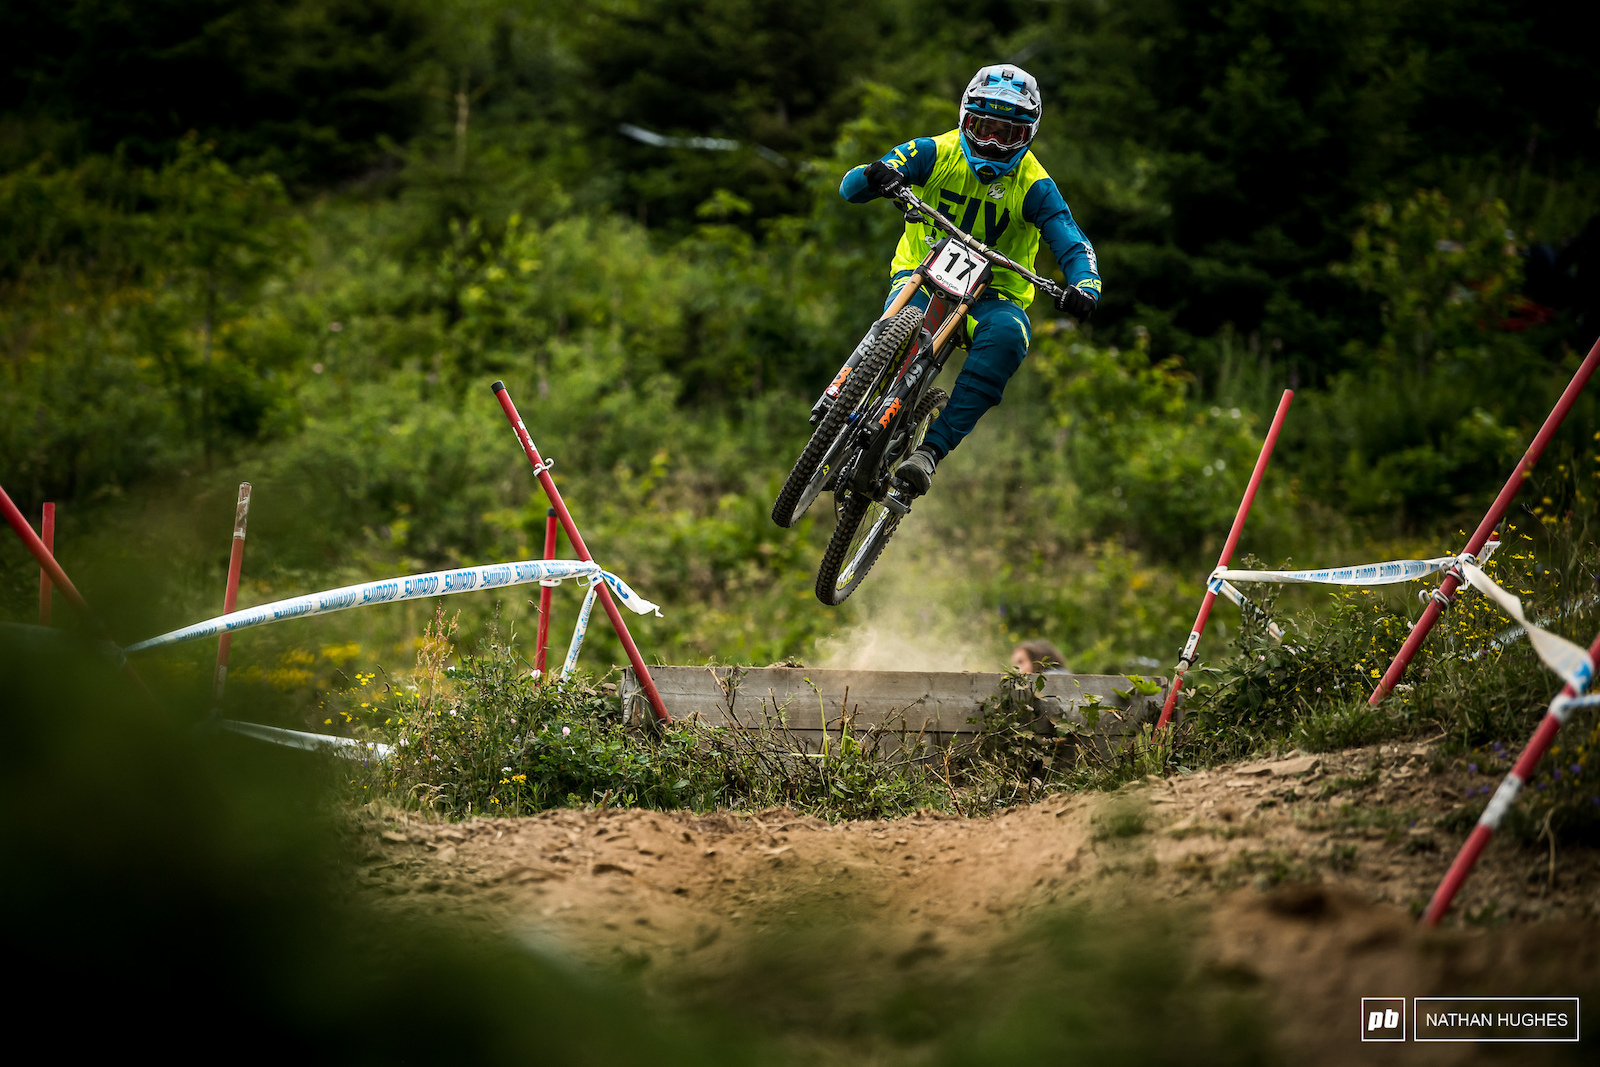 Eddy Masters still flying inside the top 20 despite time away to win the EWS.